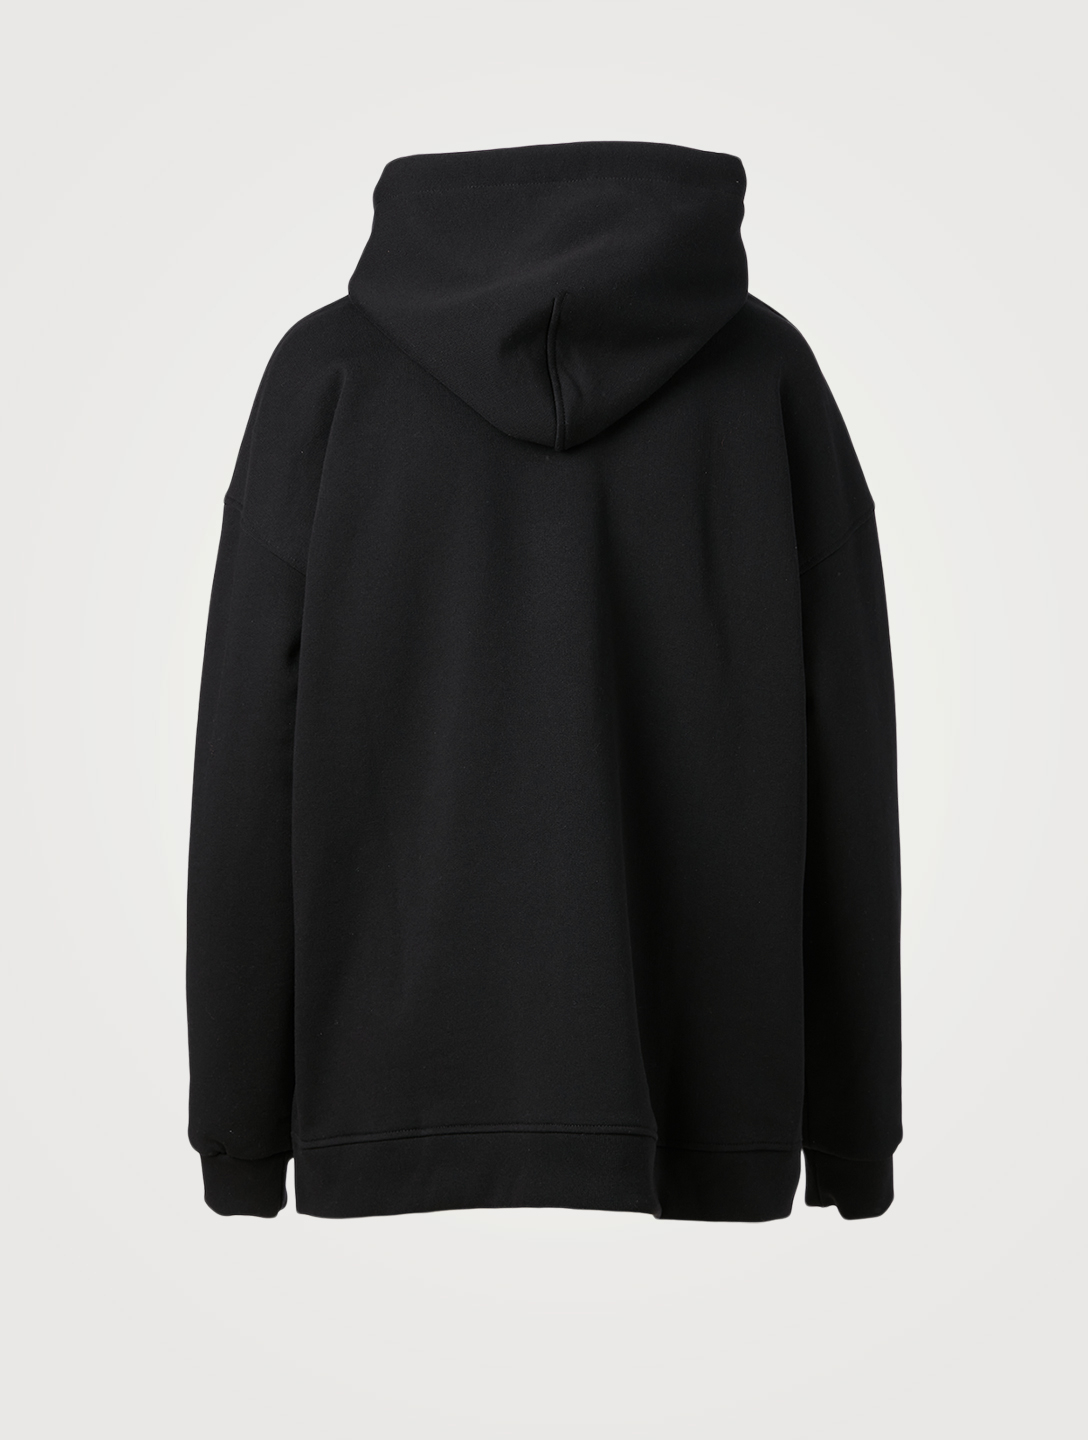 GANNI Isoli EcoLife Oversized Hoodie Women's Black